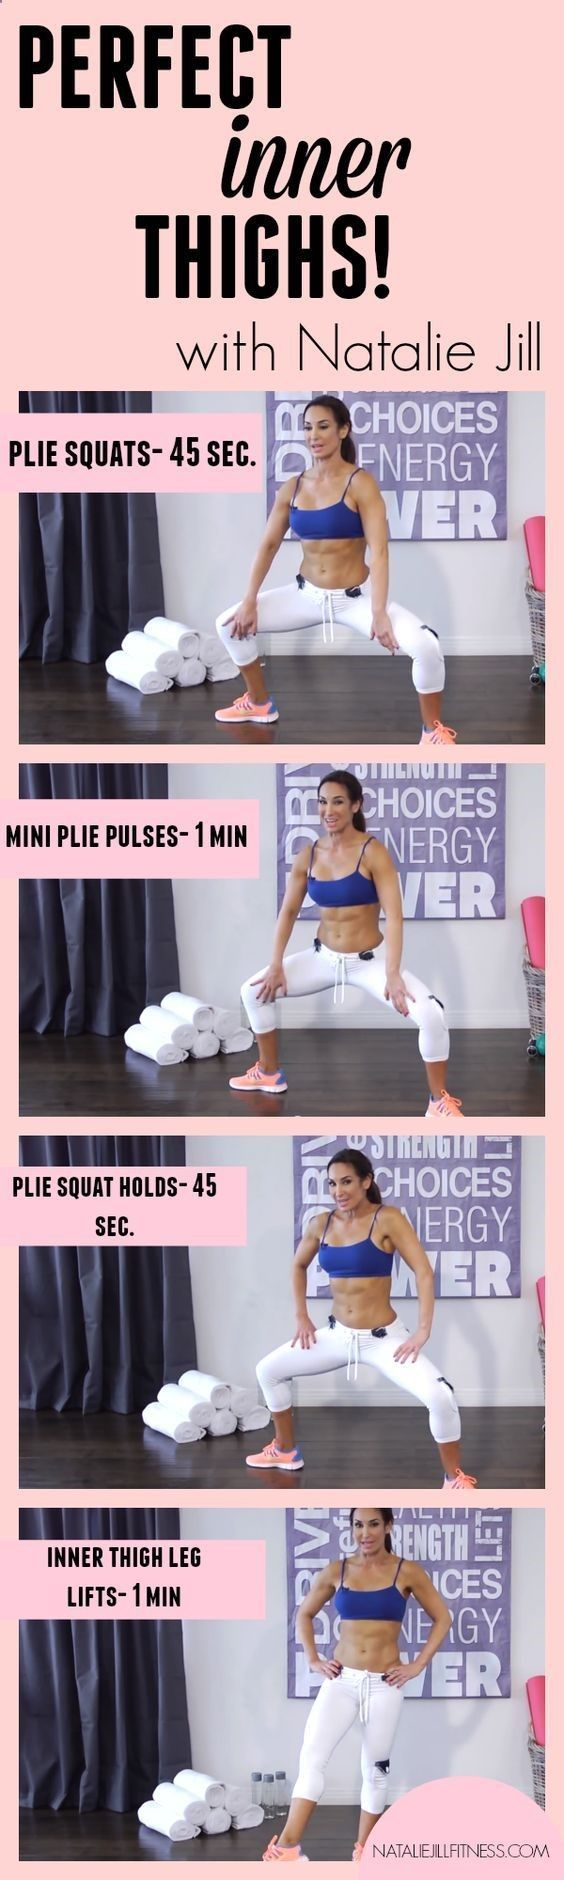 Excersices For Legs At Home and At The Gym - Check out our best moves to get a pageant swimsuit ready body and HOTTEST legs for the stage at ThePageantPlanet.com. - Strengthening our legs is an exercise that we are going to make profitable from the beginning and, therefore, we must include it in our weekly training routine